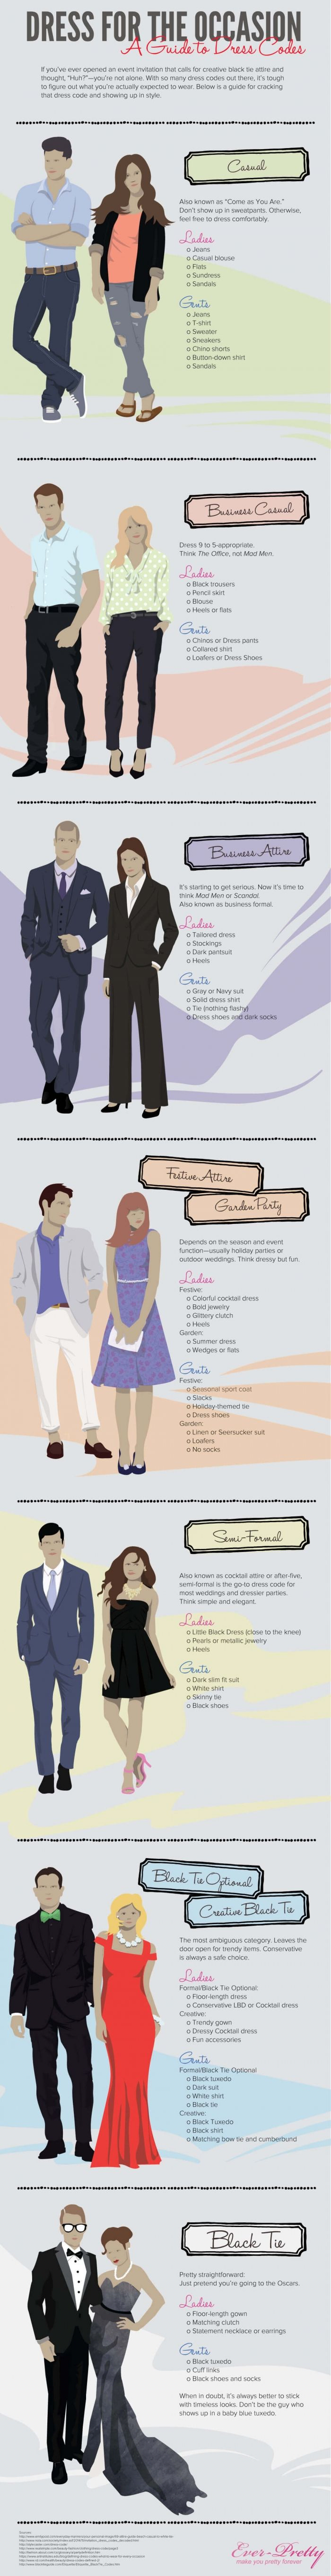 Perfect Dress for the Occasion Infographic #Infographics